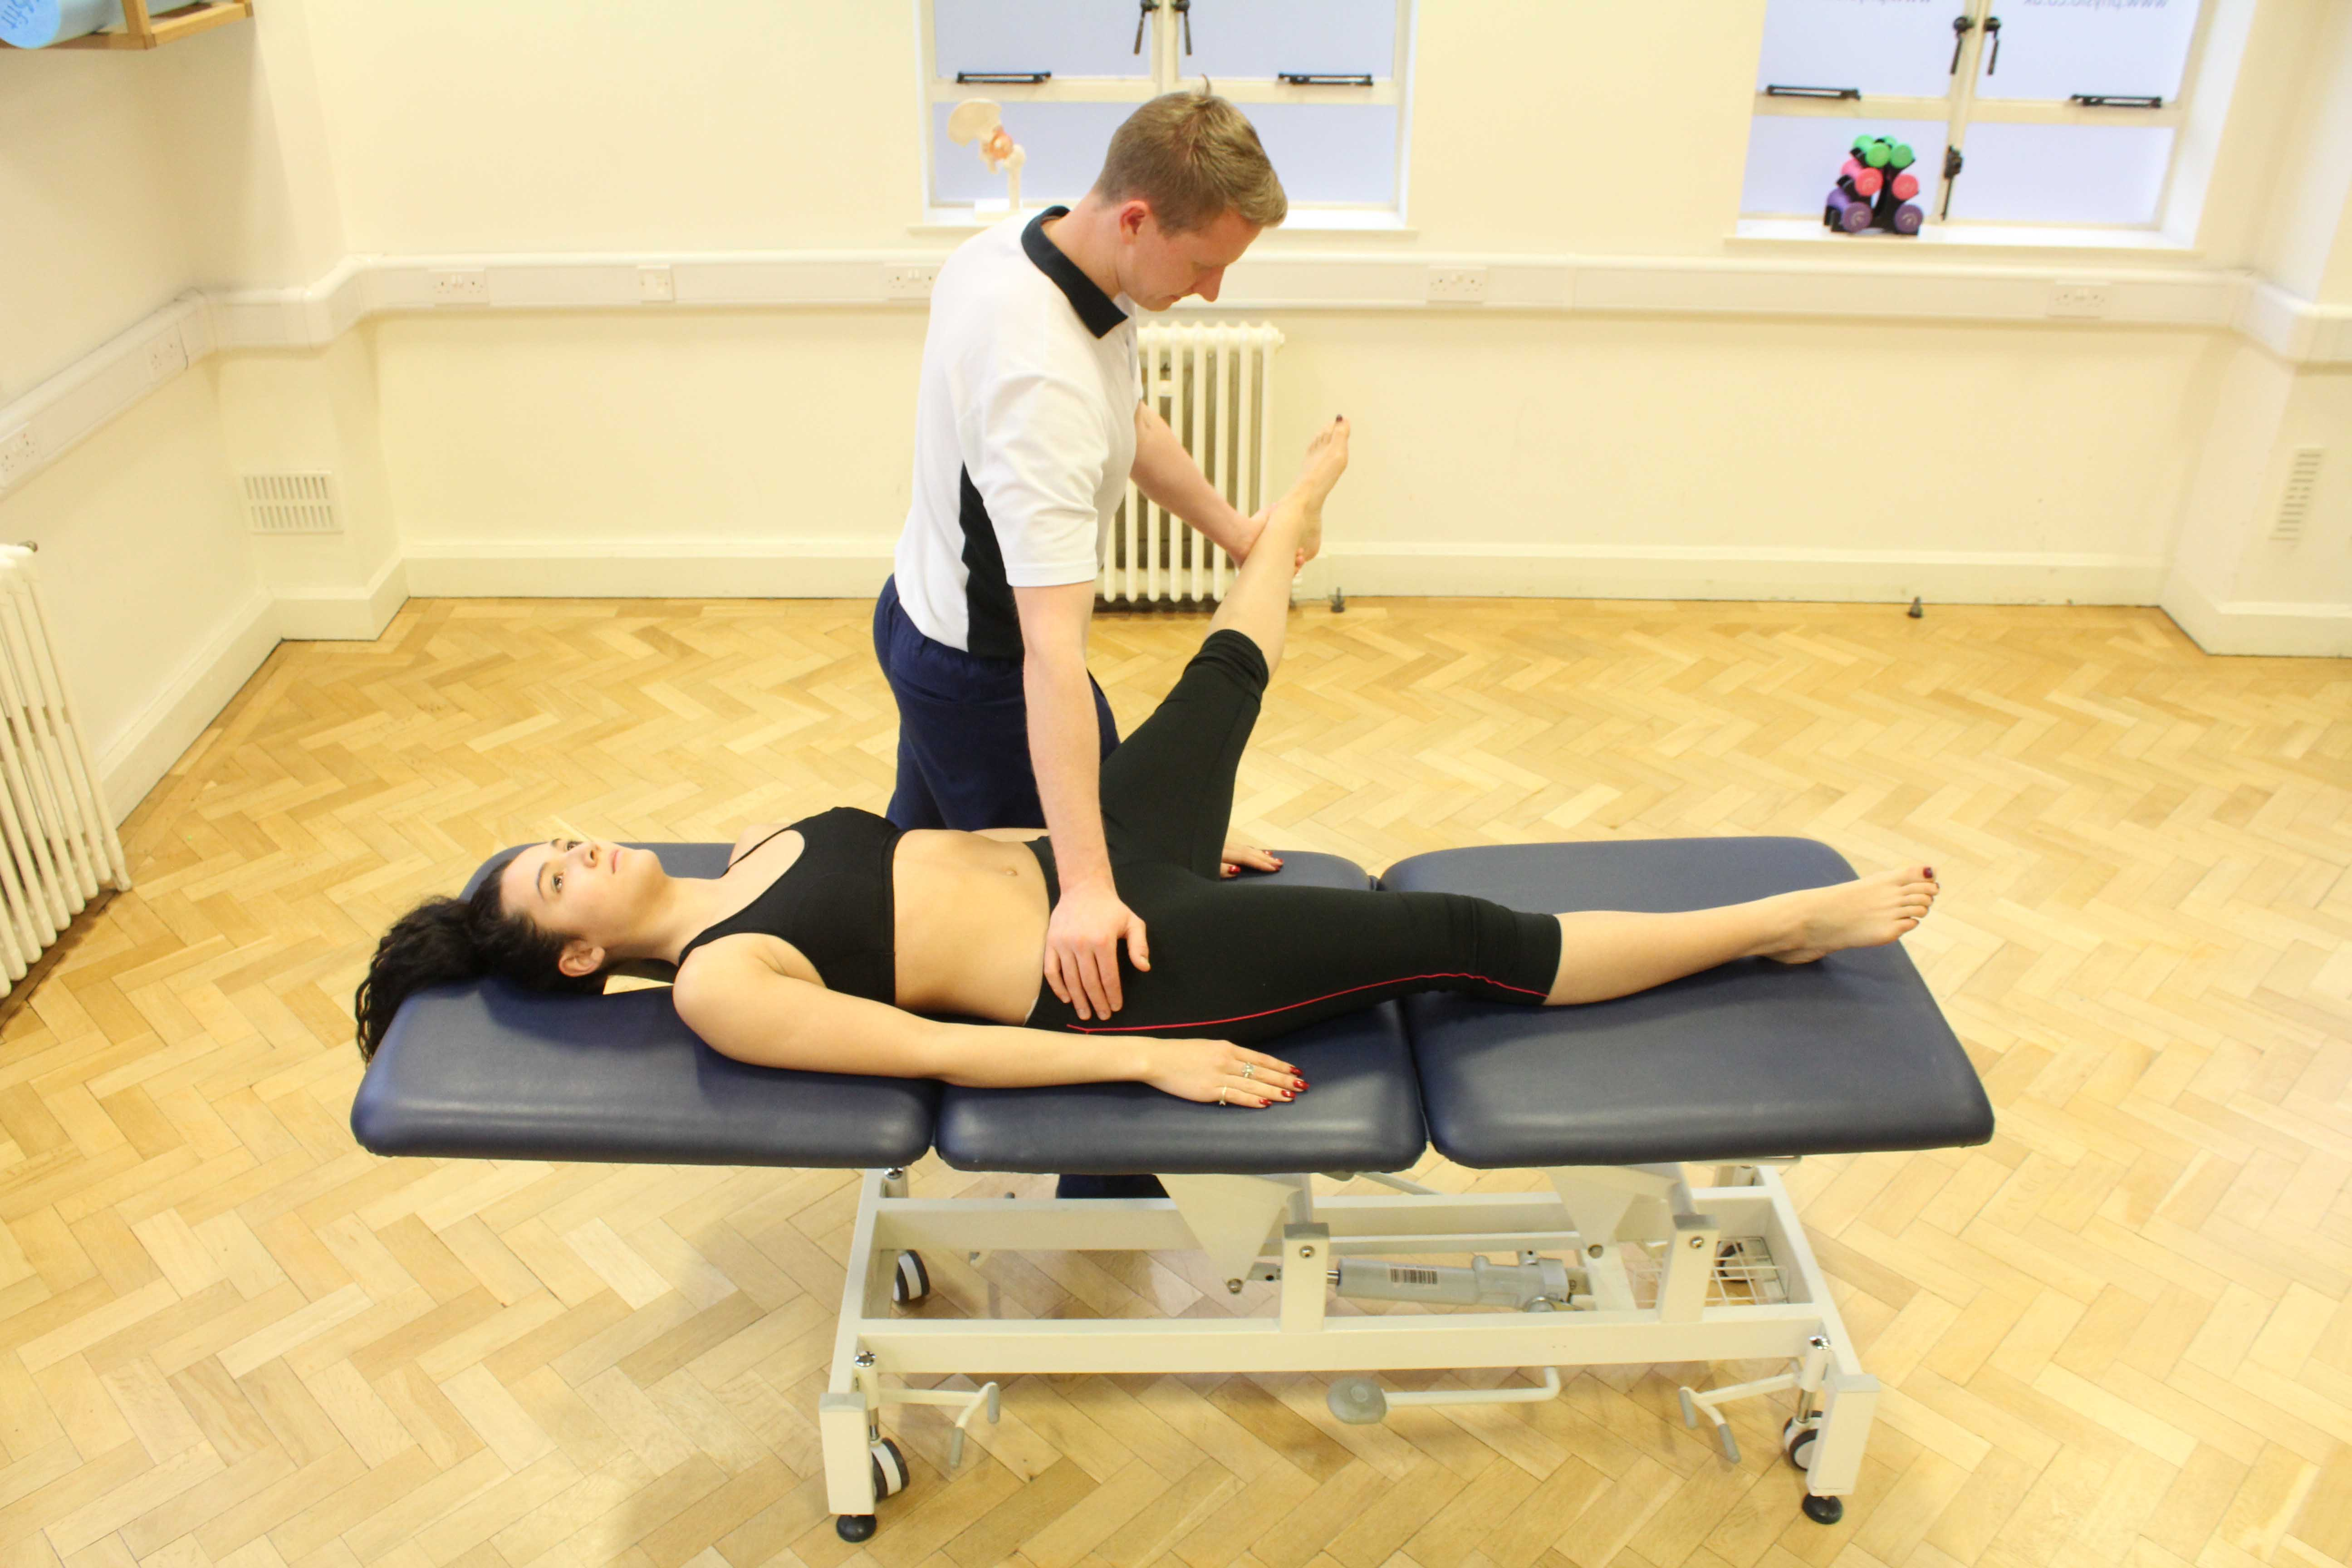 Passive mobilisations and stretches of the hip and knee by a specilaist physiotherapist